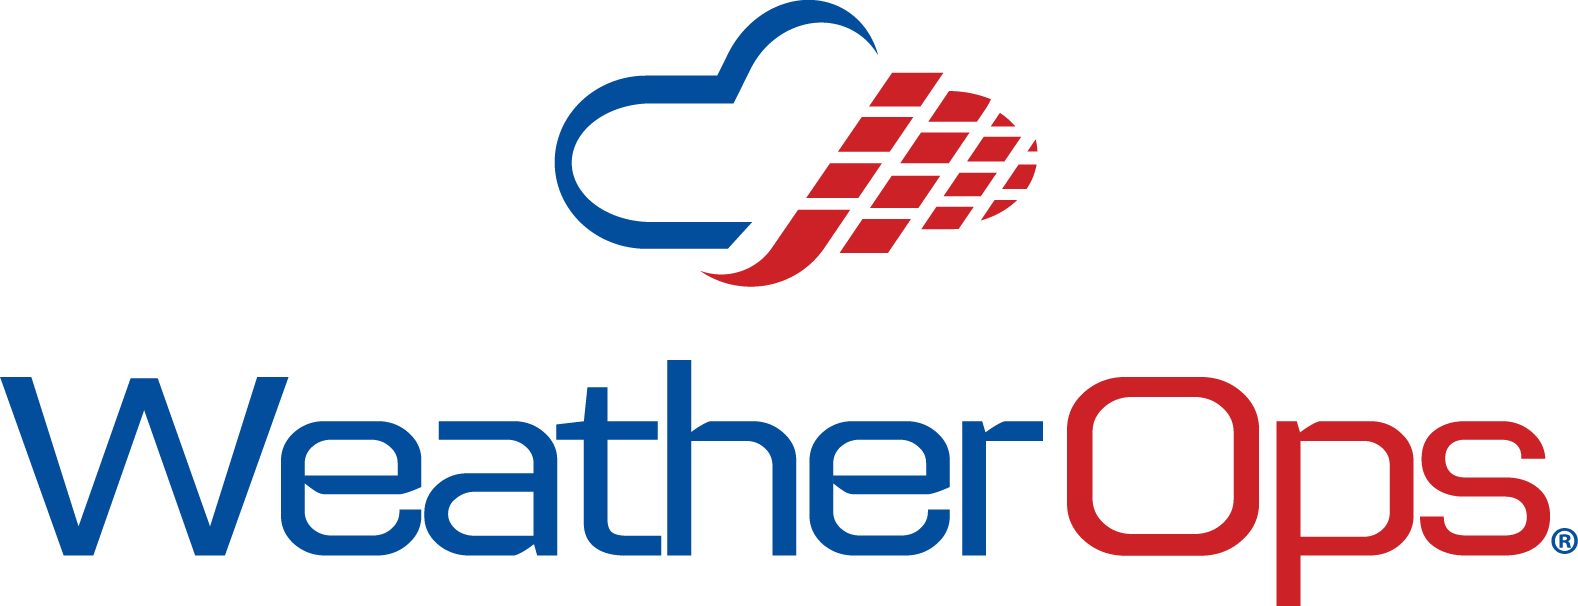 WeatherOps to Provide 24/7 Monitoring for the Summer Olympics